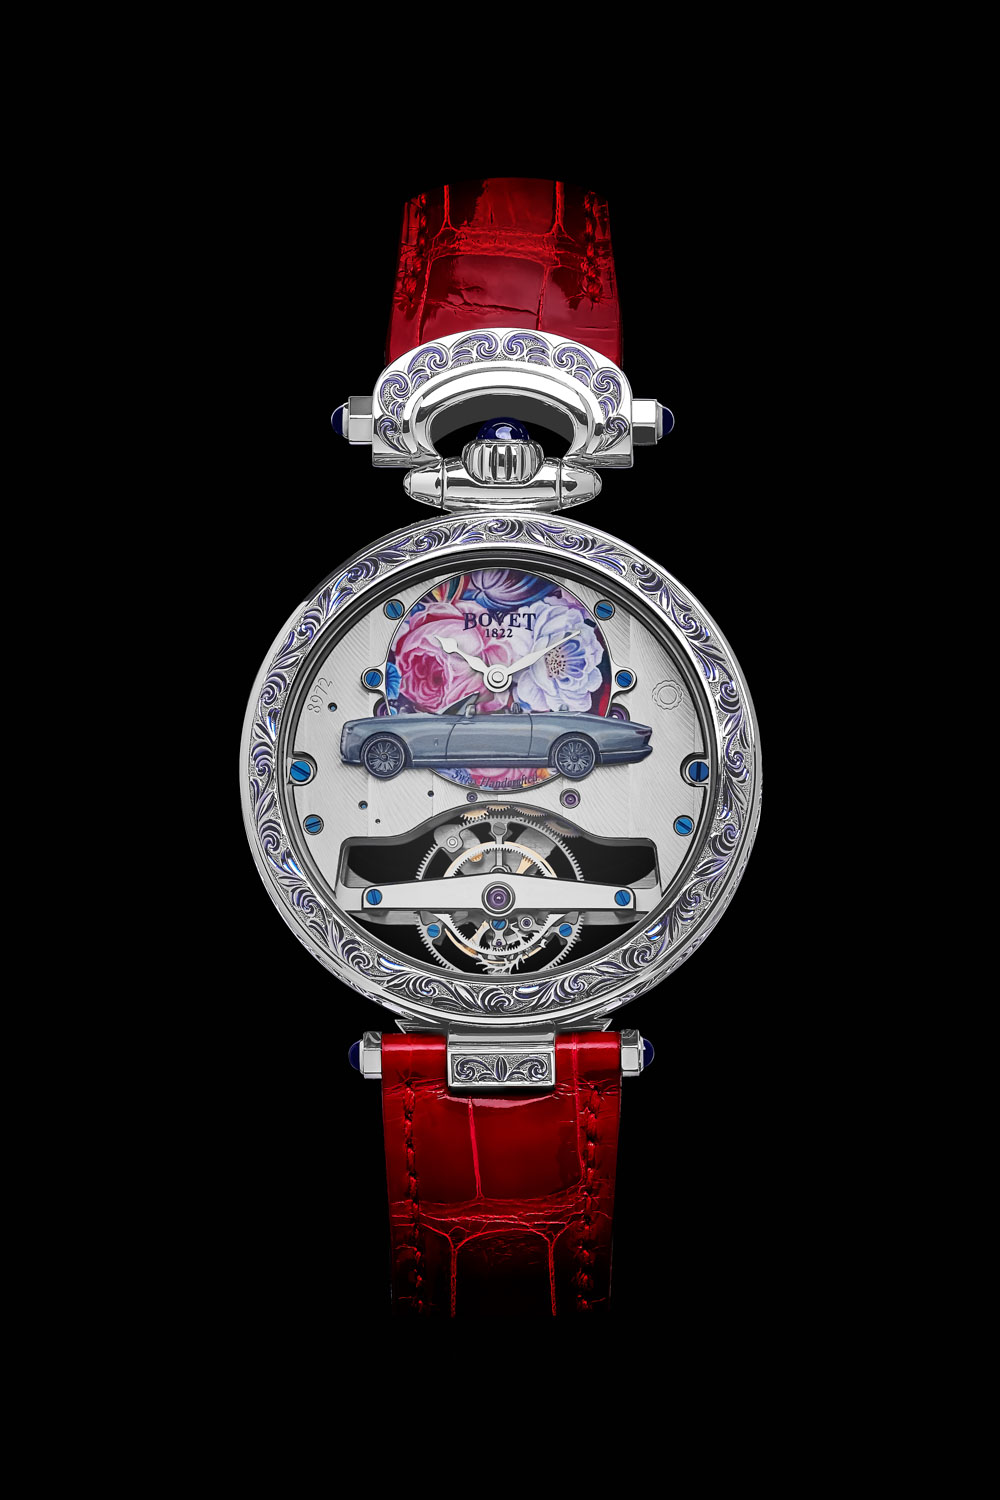 Rolls-Royce Boat Tail Bovet Lady's Timepiece